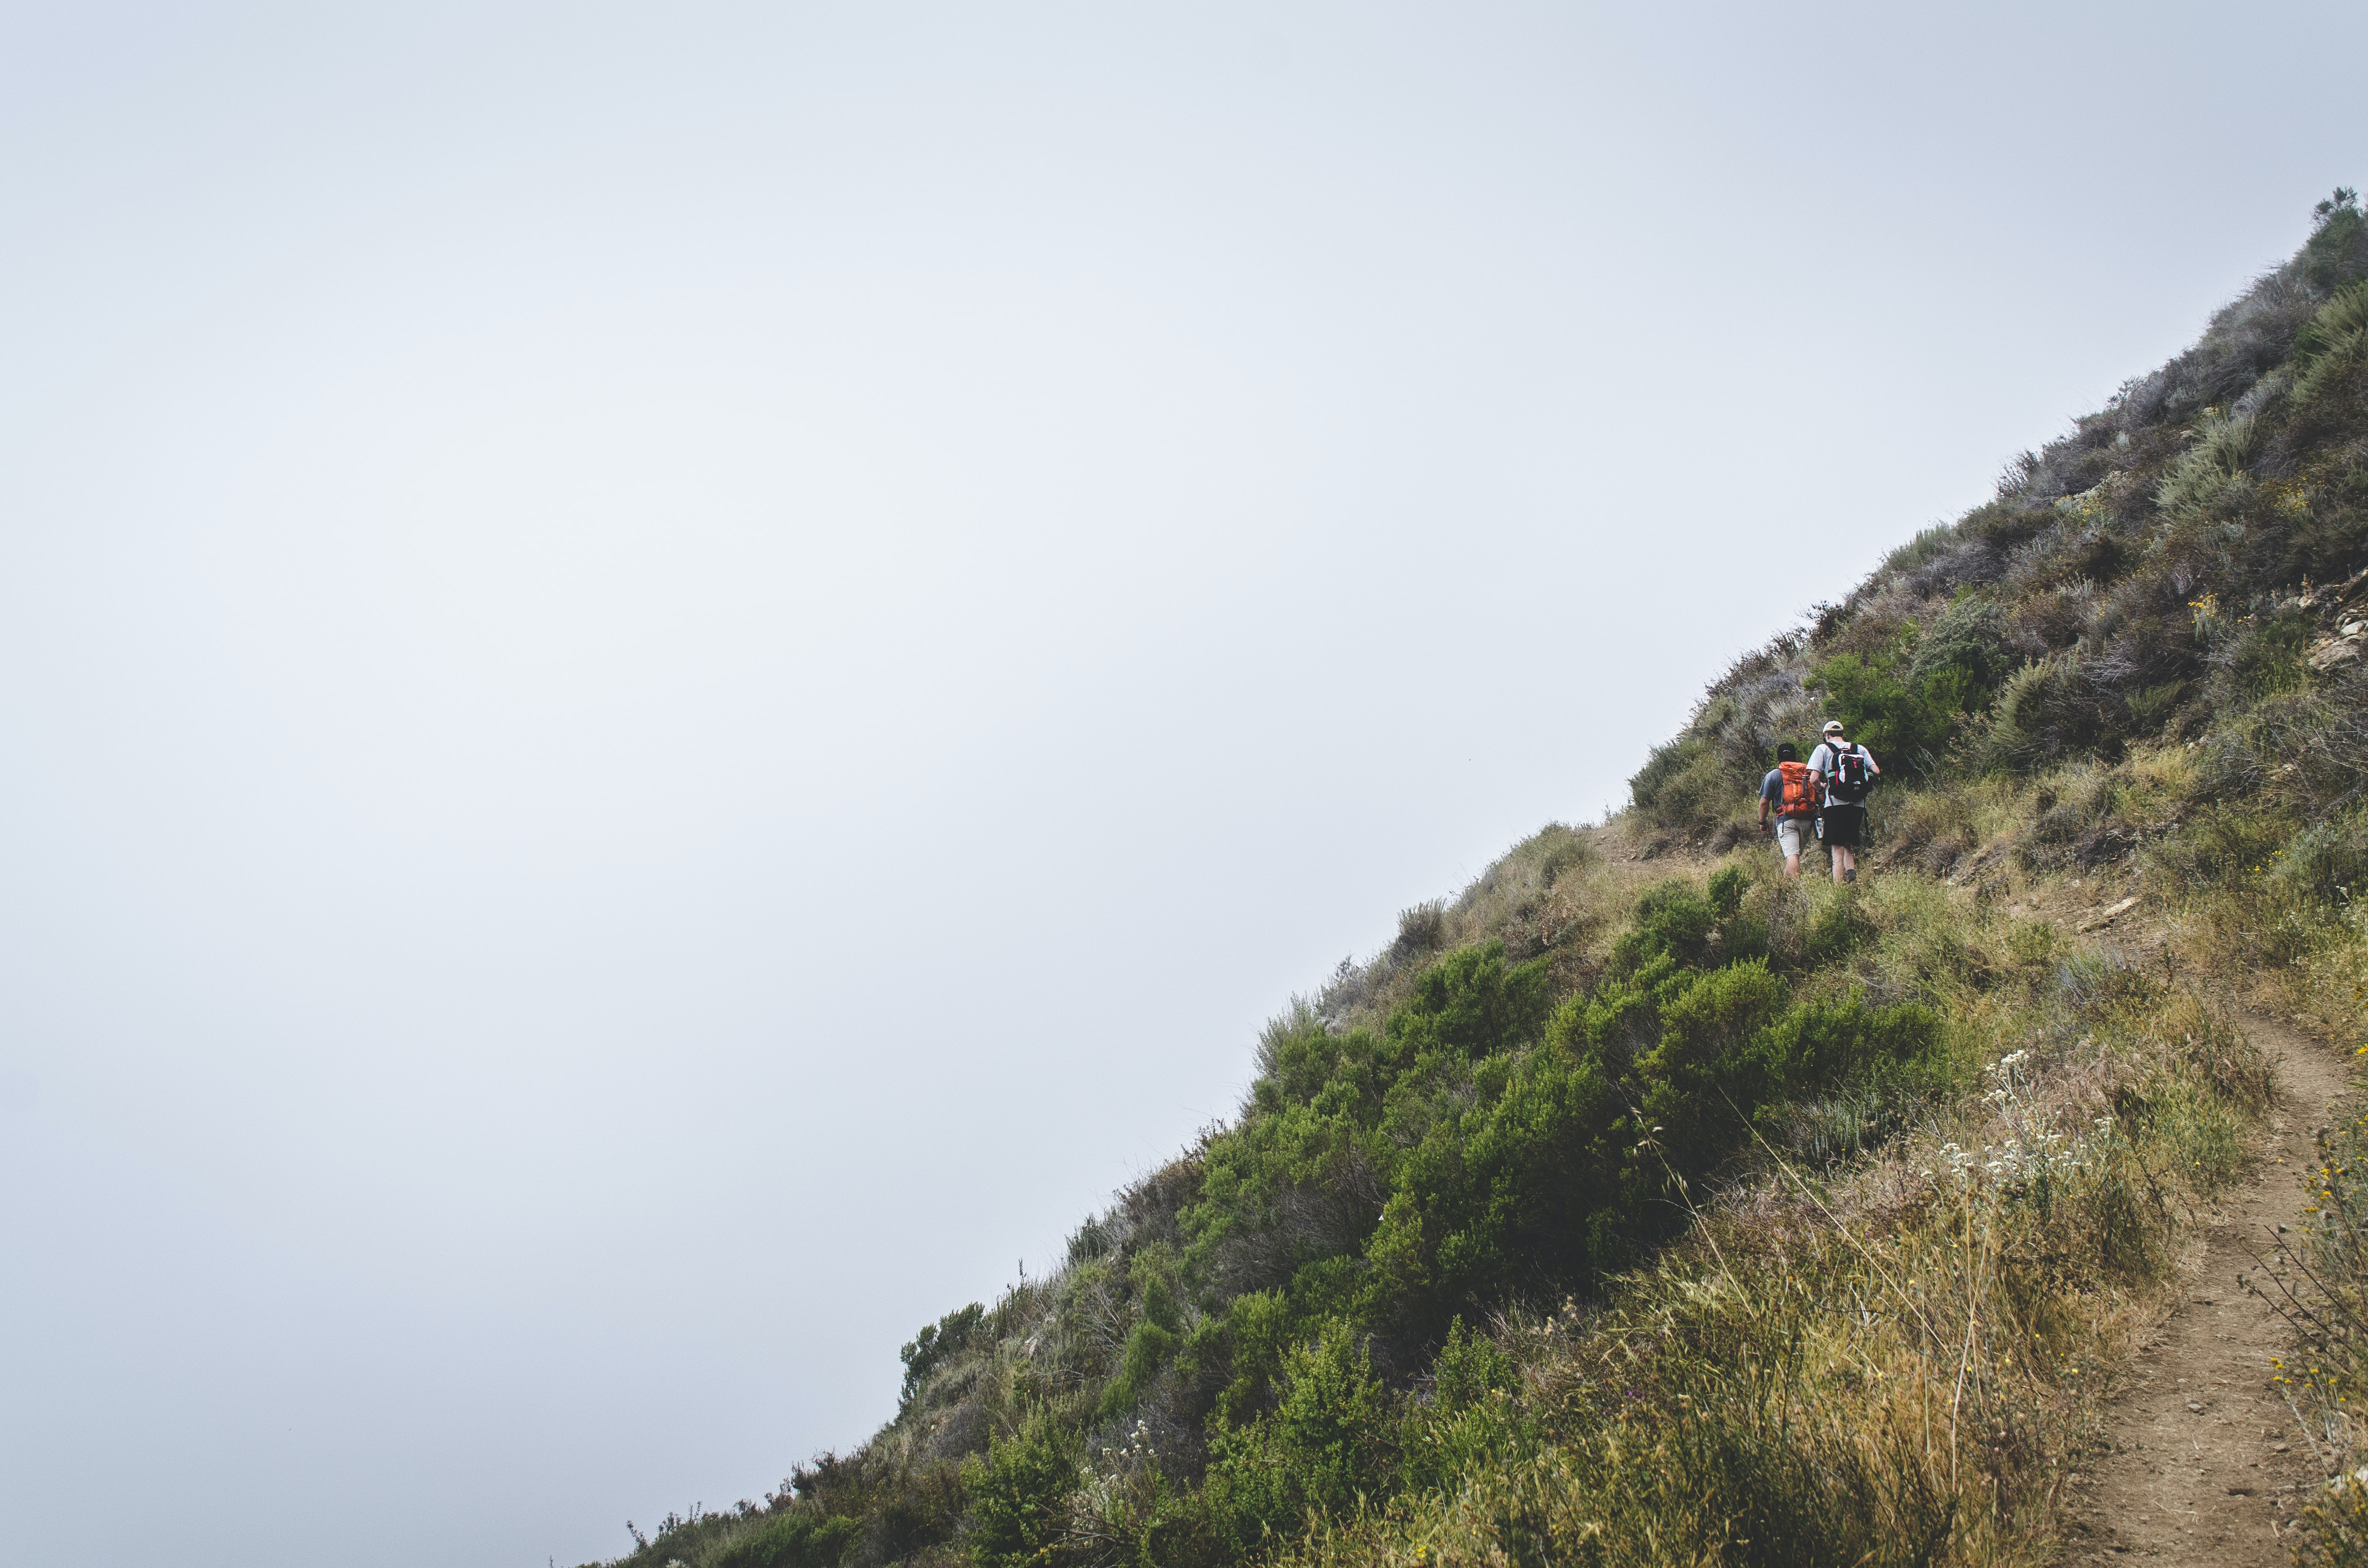 Two backpackers on a footpath on a steep slope